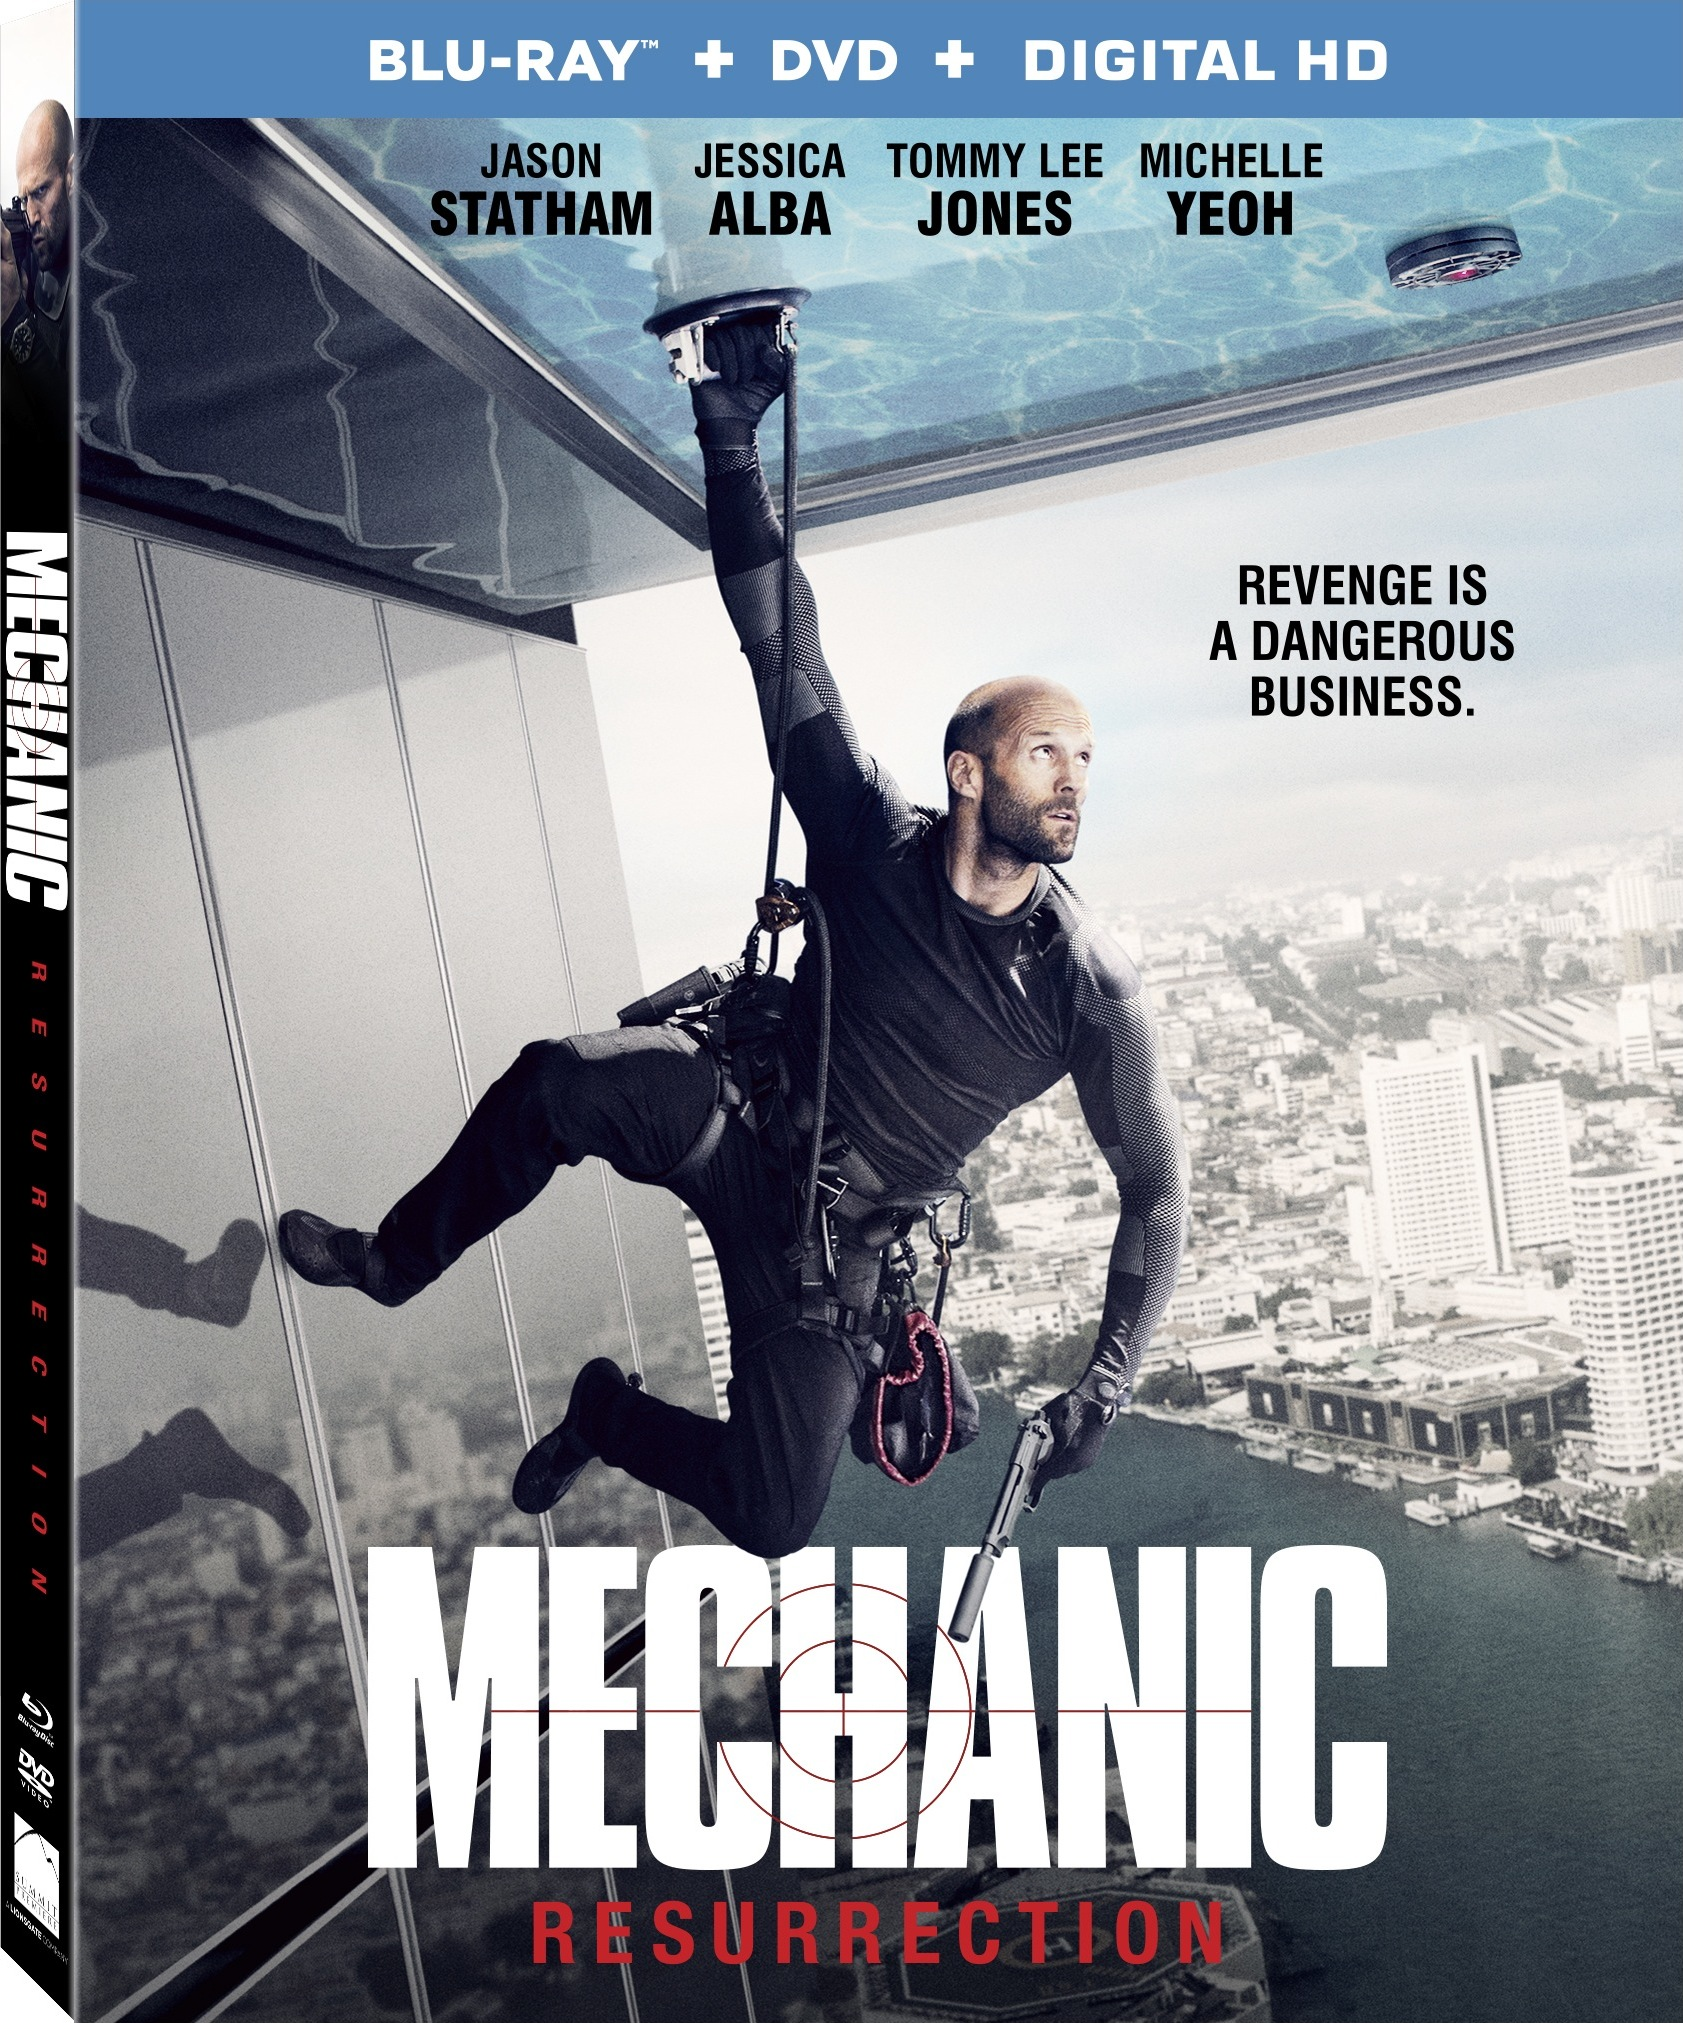 Mechanic: Resurrection (2016) poster image